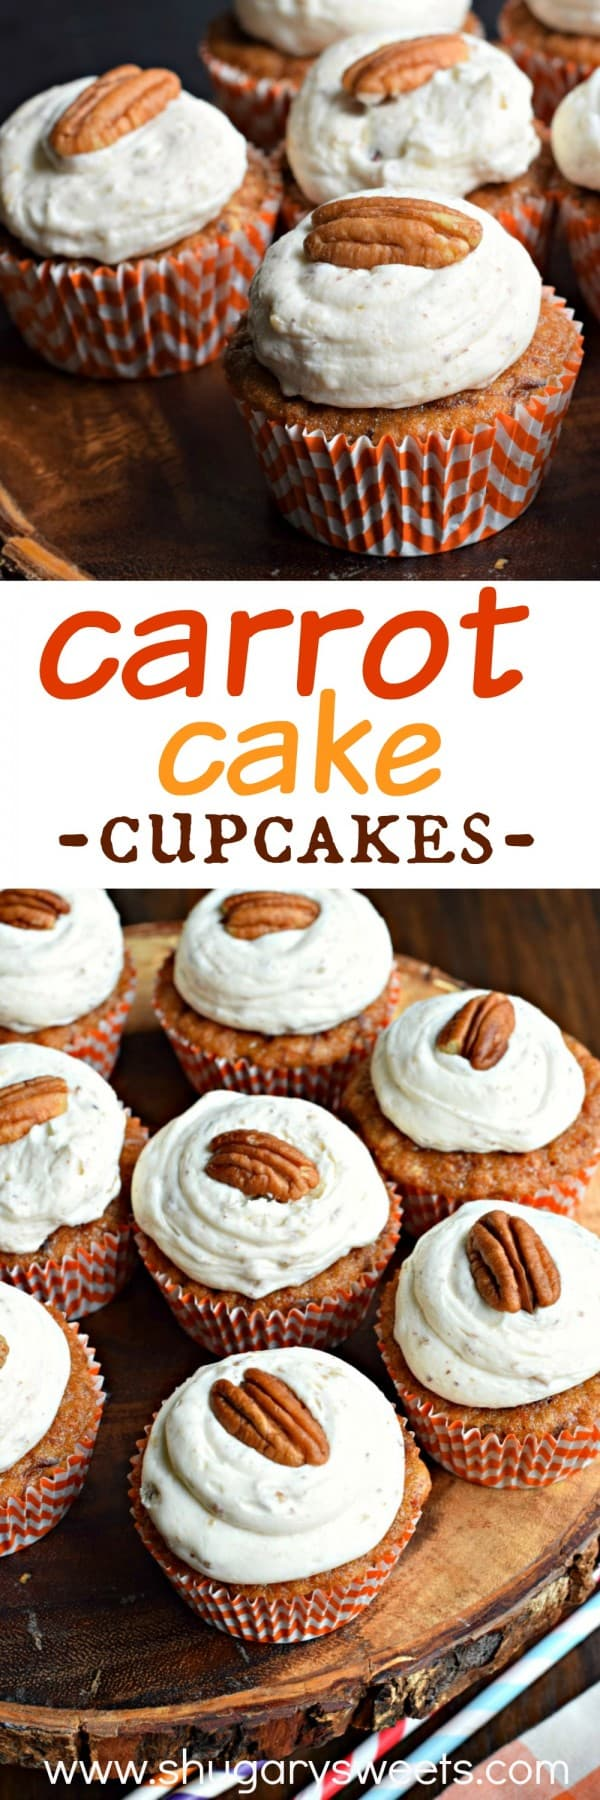 Delicious, from scratch, Carrot Cake Cupcakes with a cream cheese frosting!